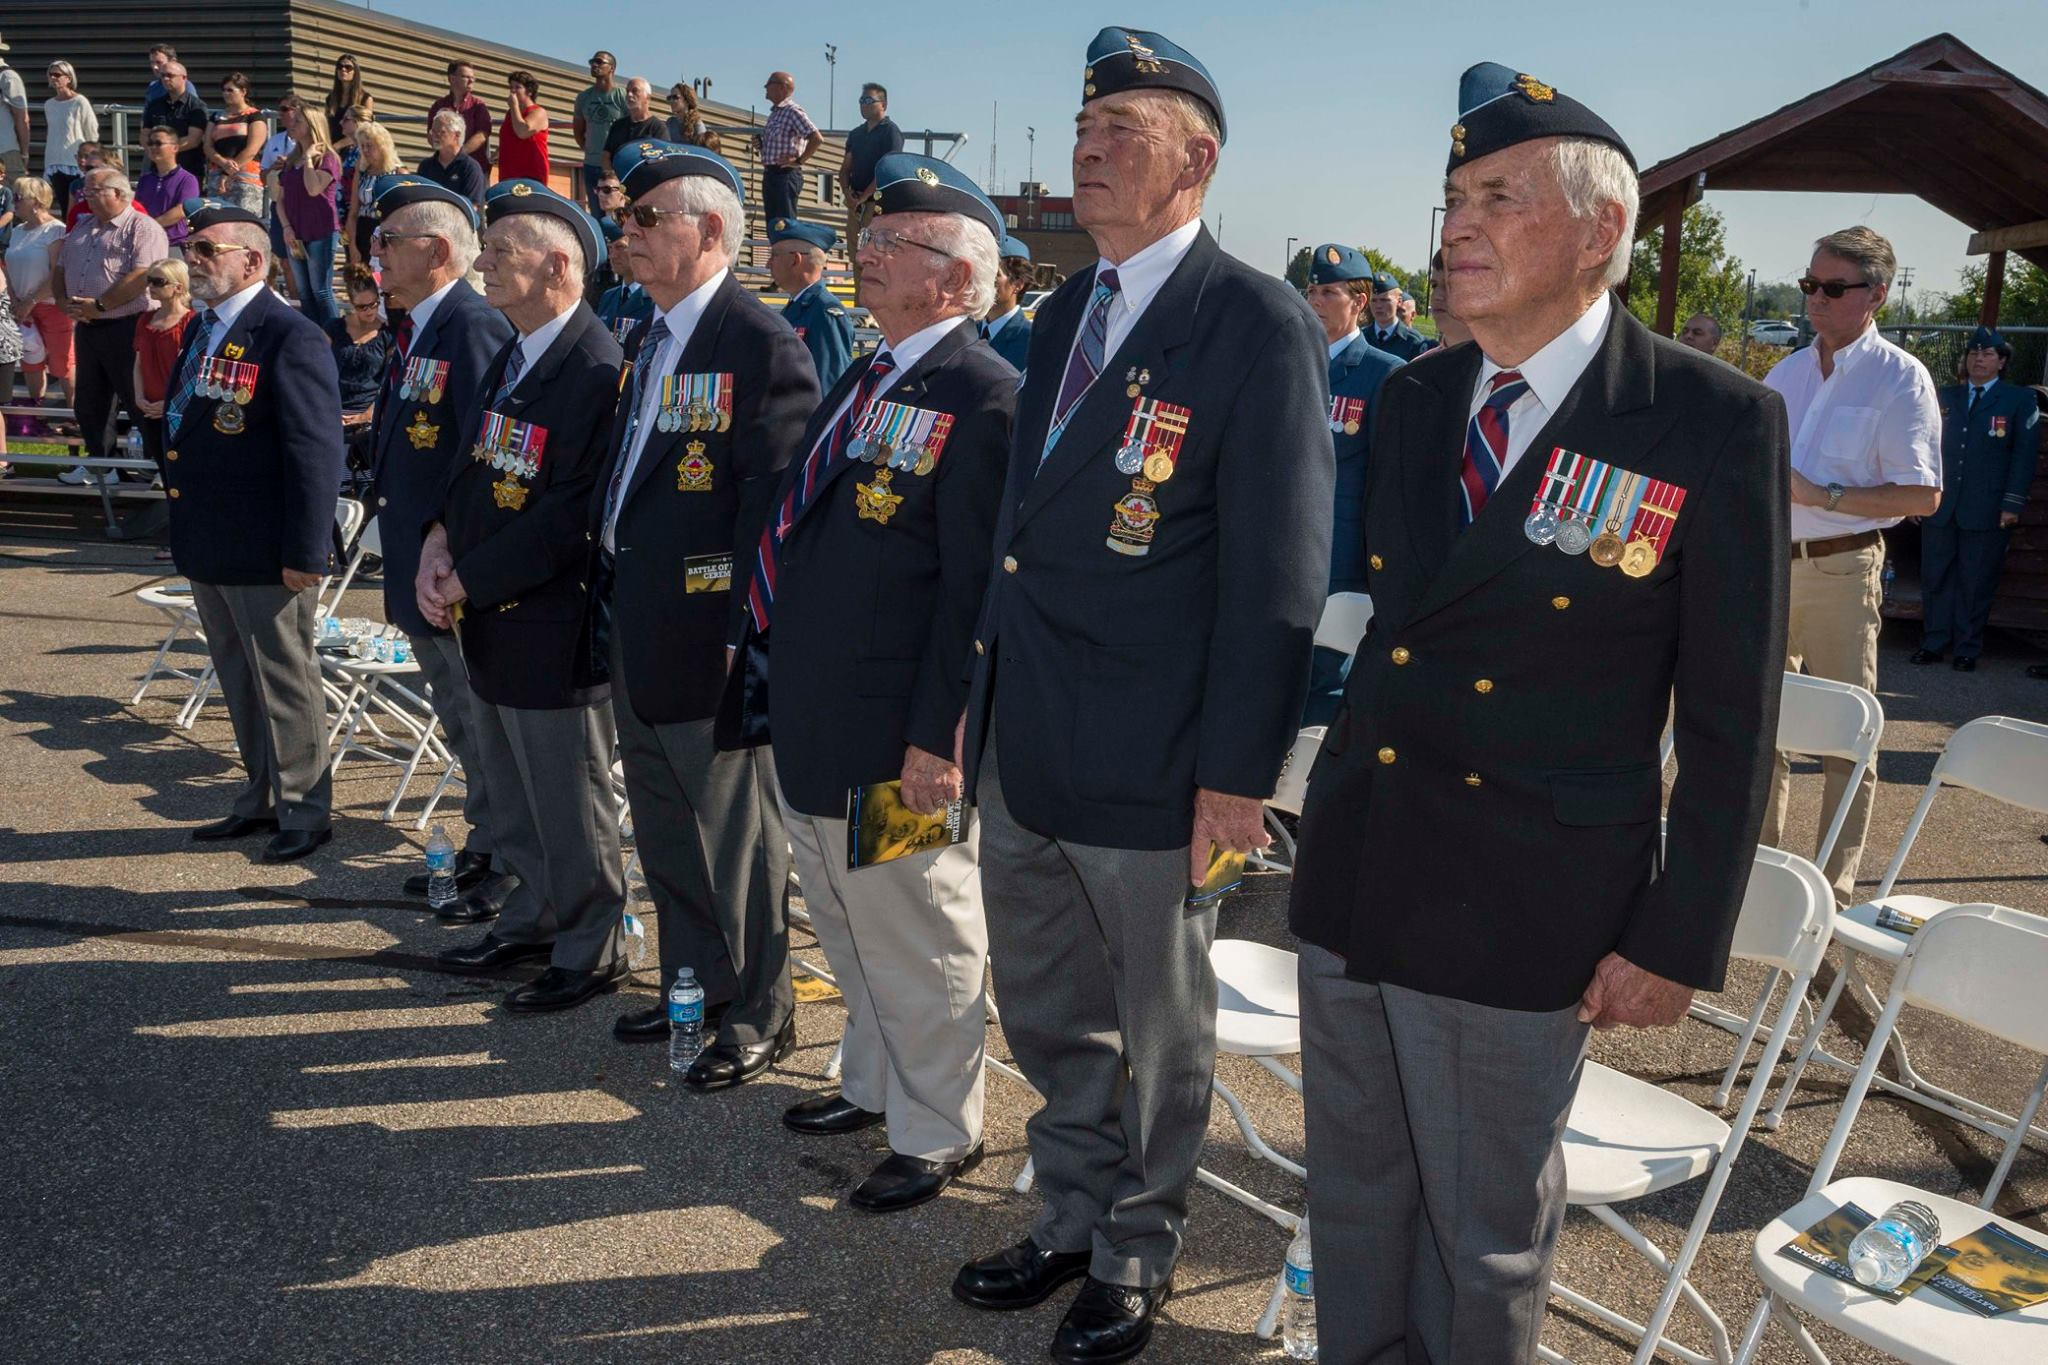 RCAF veterans prepare to march on parade at the national Battle of Britain parade held September 17, 2017, at the Vintage Wings of Canada hangar in Gatineau, Quebec. PHOTO: Corporal Alana Morin